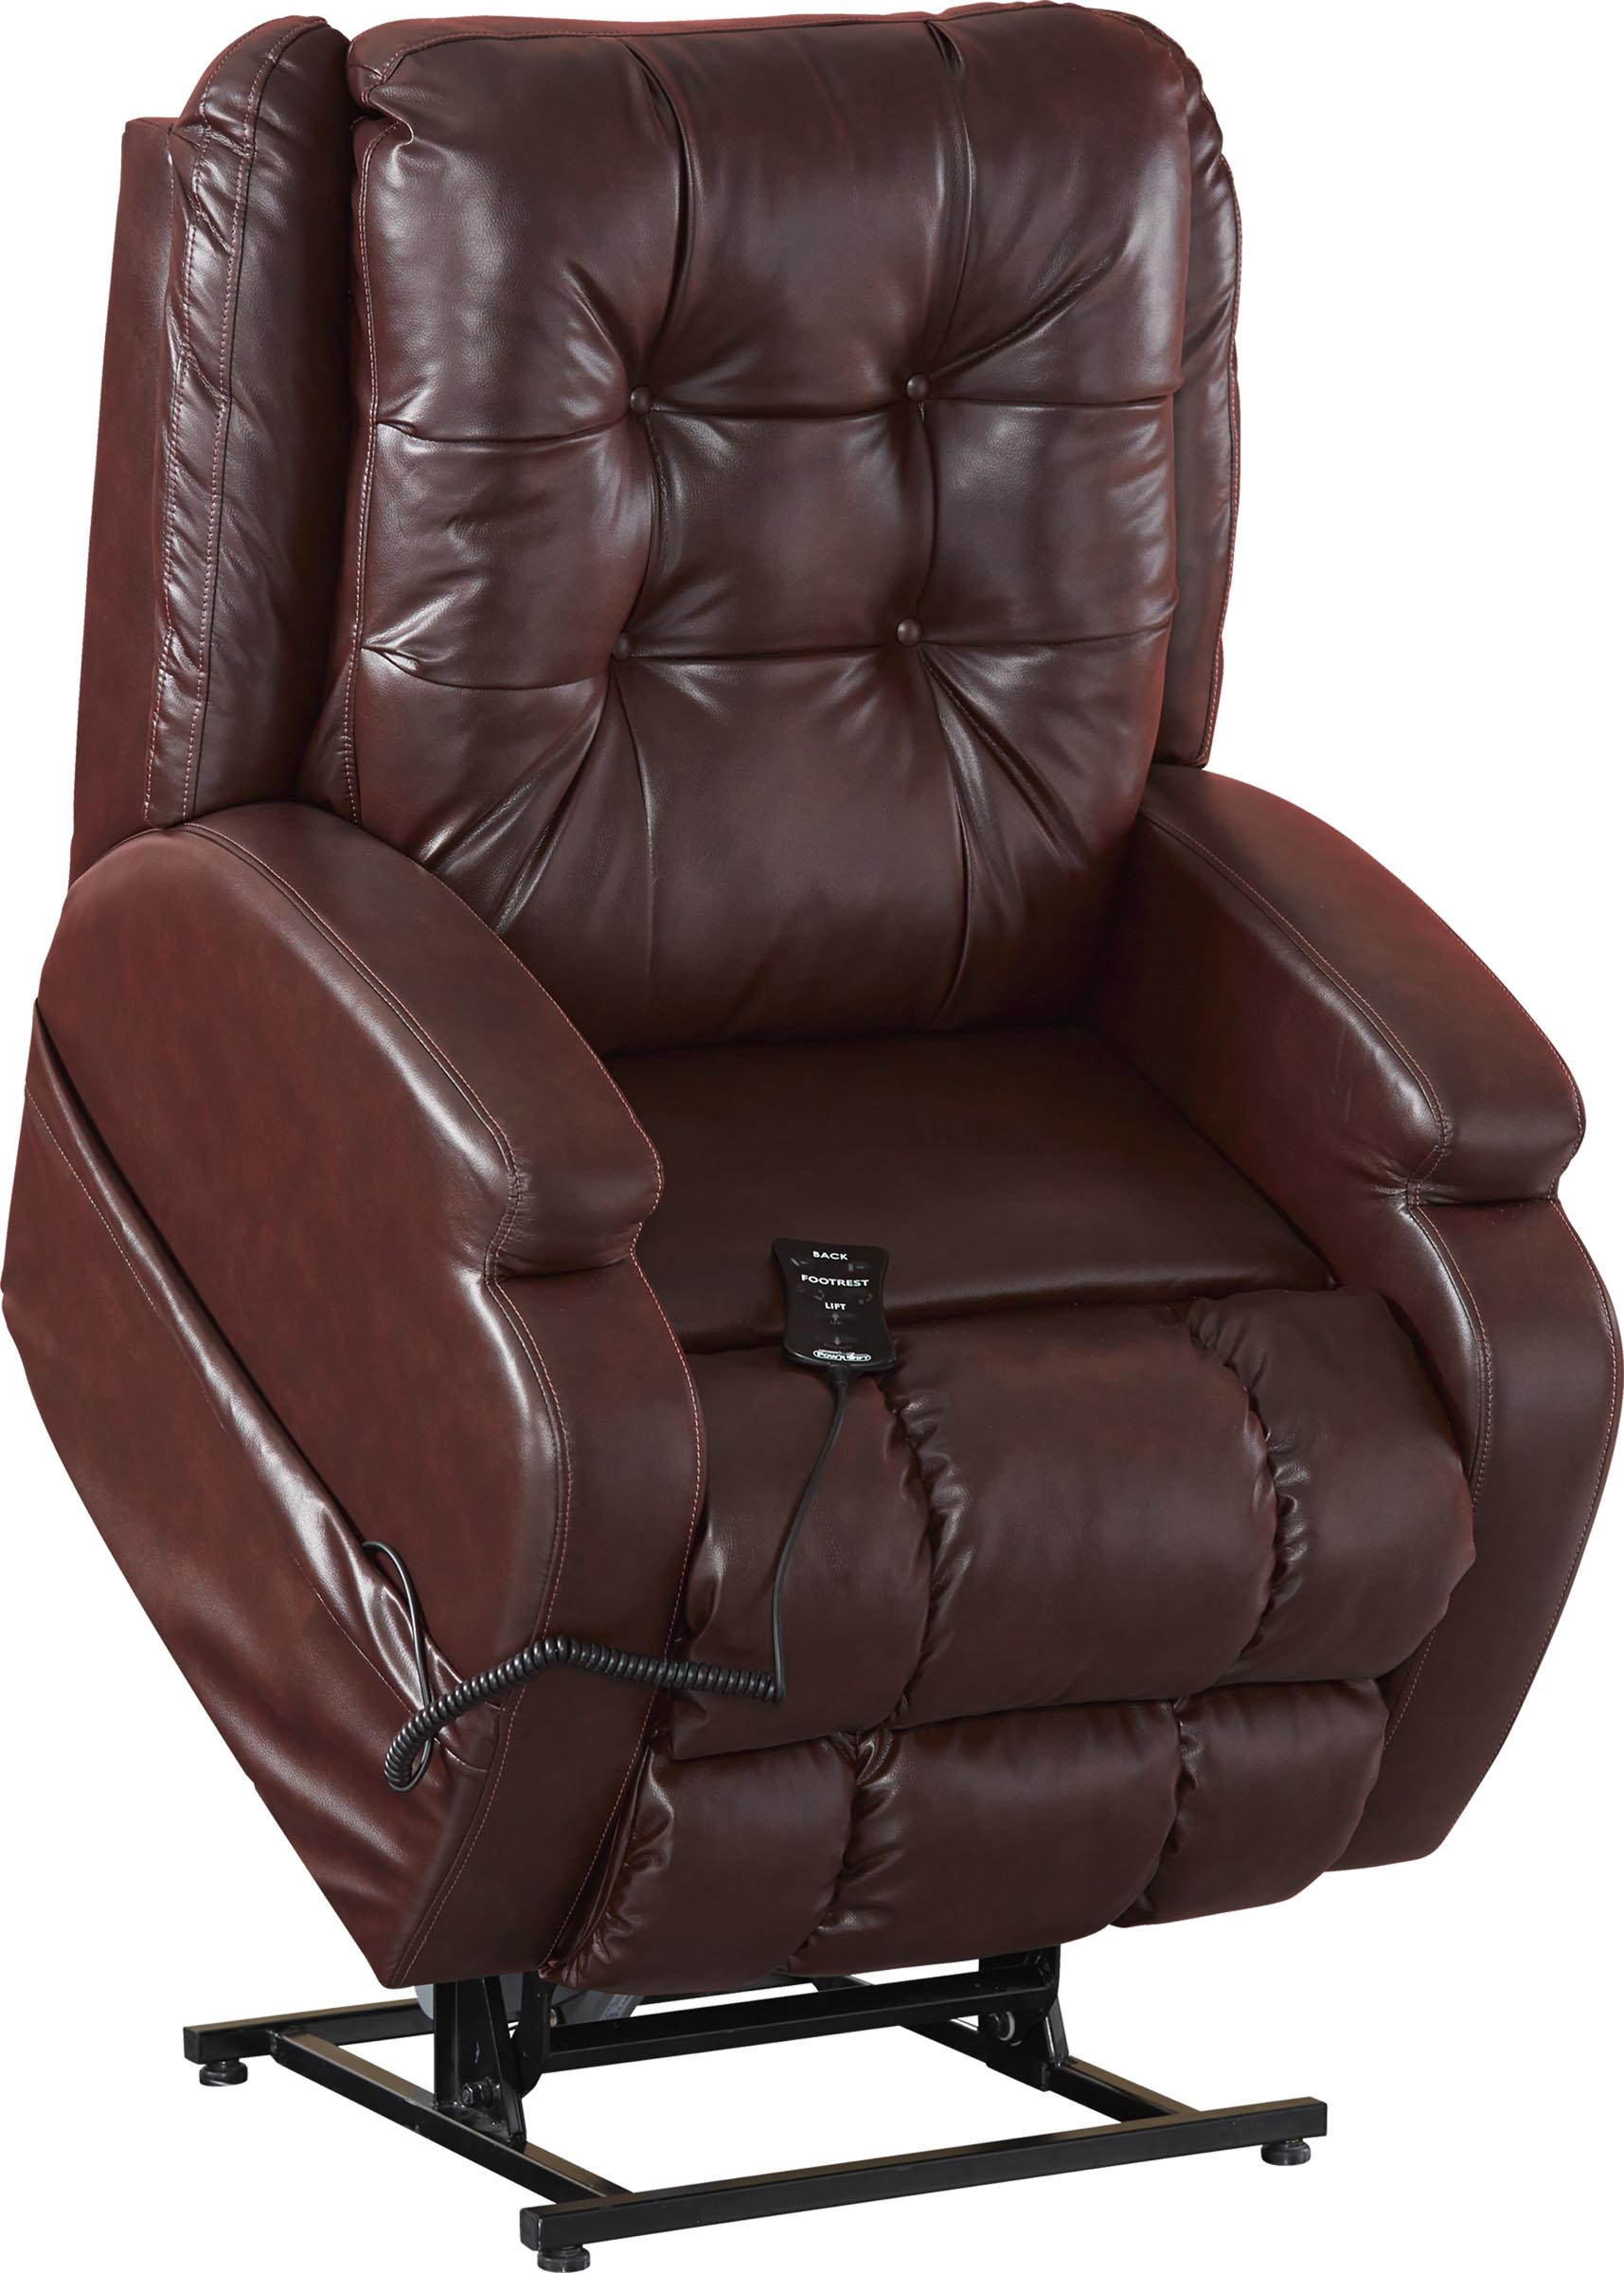 Catnapper Jenson 4855 Power Lift Chair & Recliner Burgundy (curbside delivery) by Catnapper